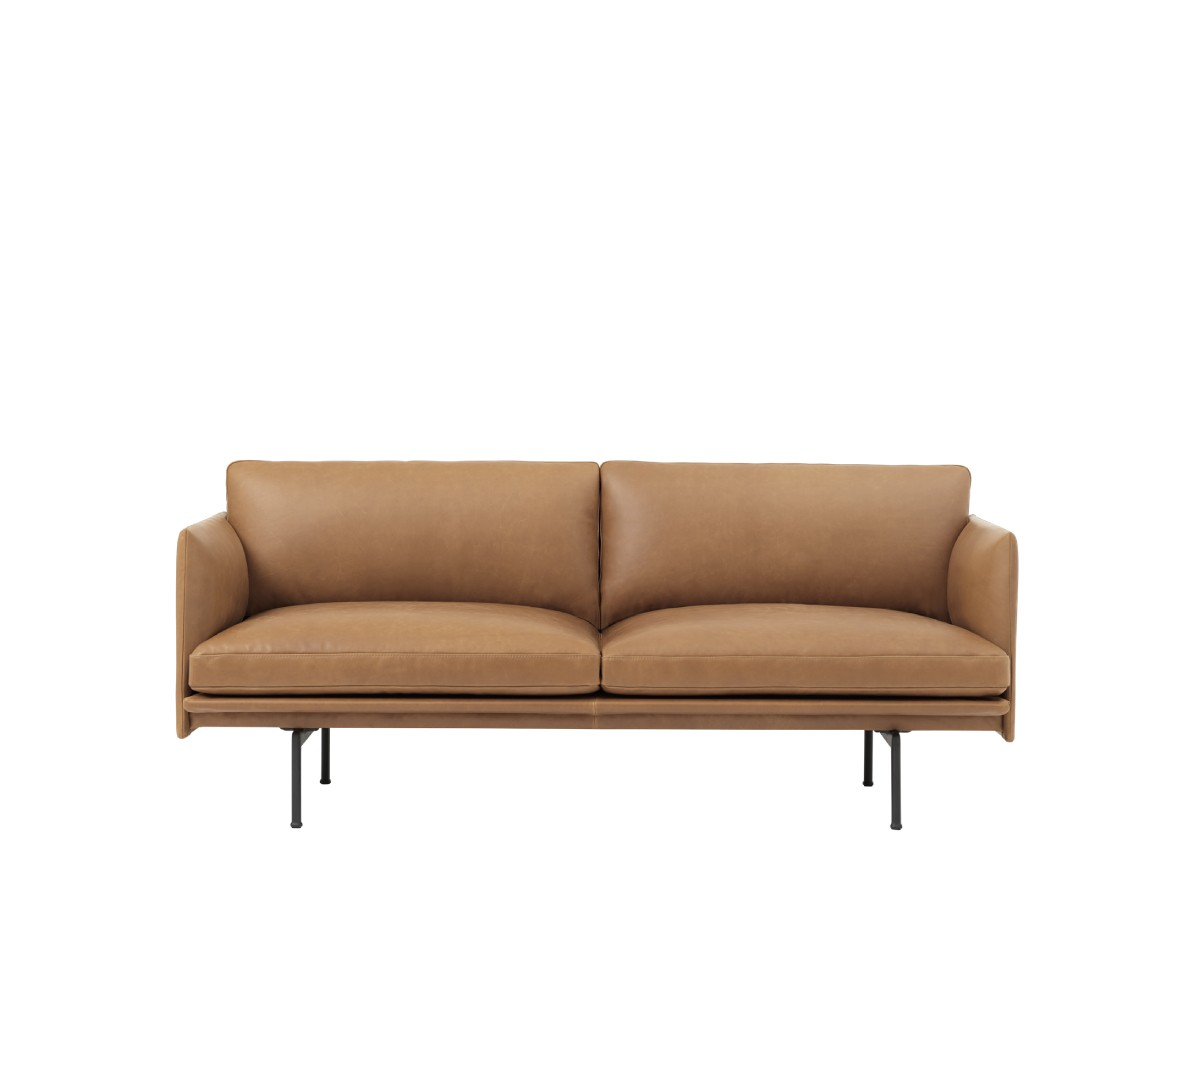 Sofas Online Shop Outline 2 Seater